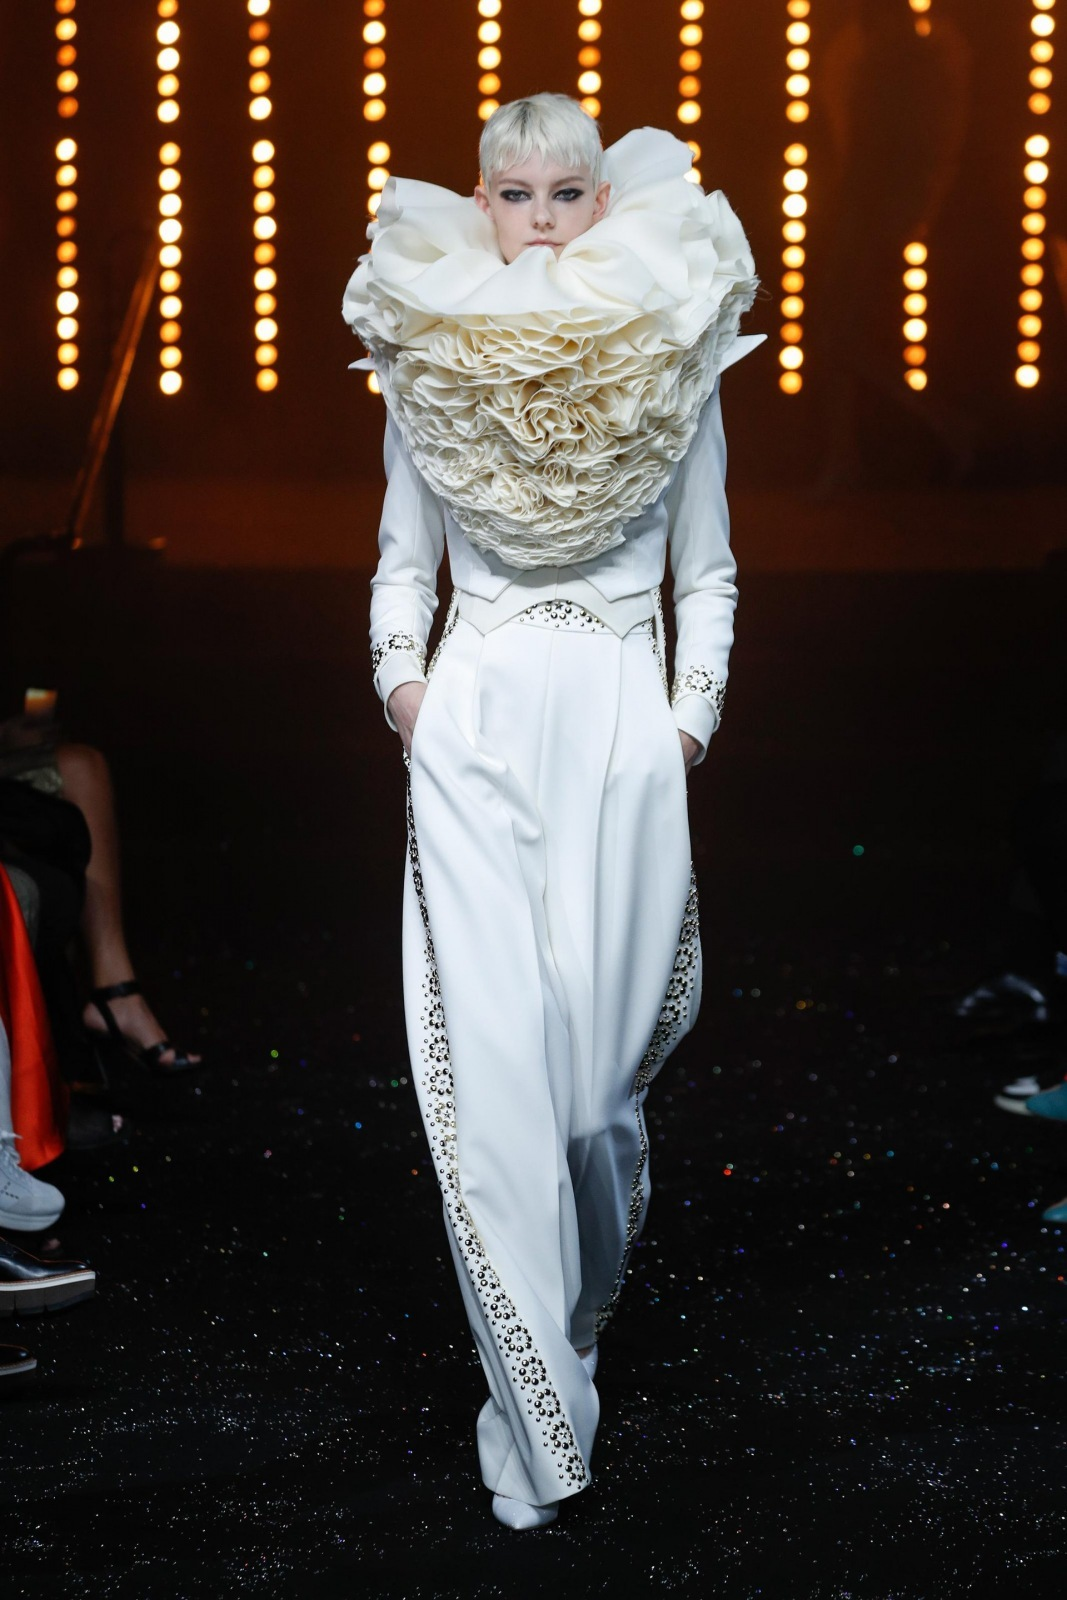 Luxury Show Viktor Rolf The Models Are Decorated With Luxurious Swarovski Crystals